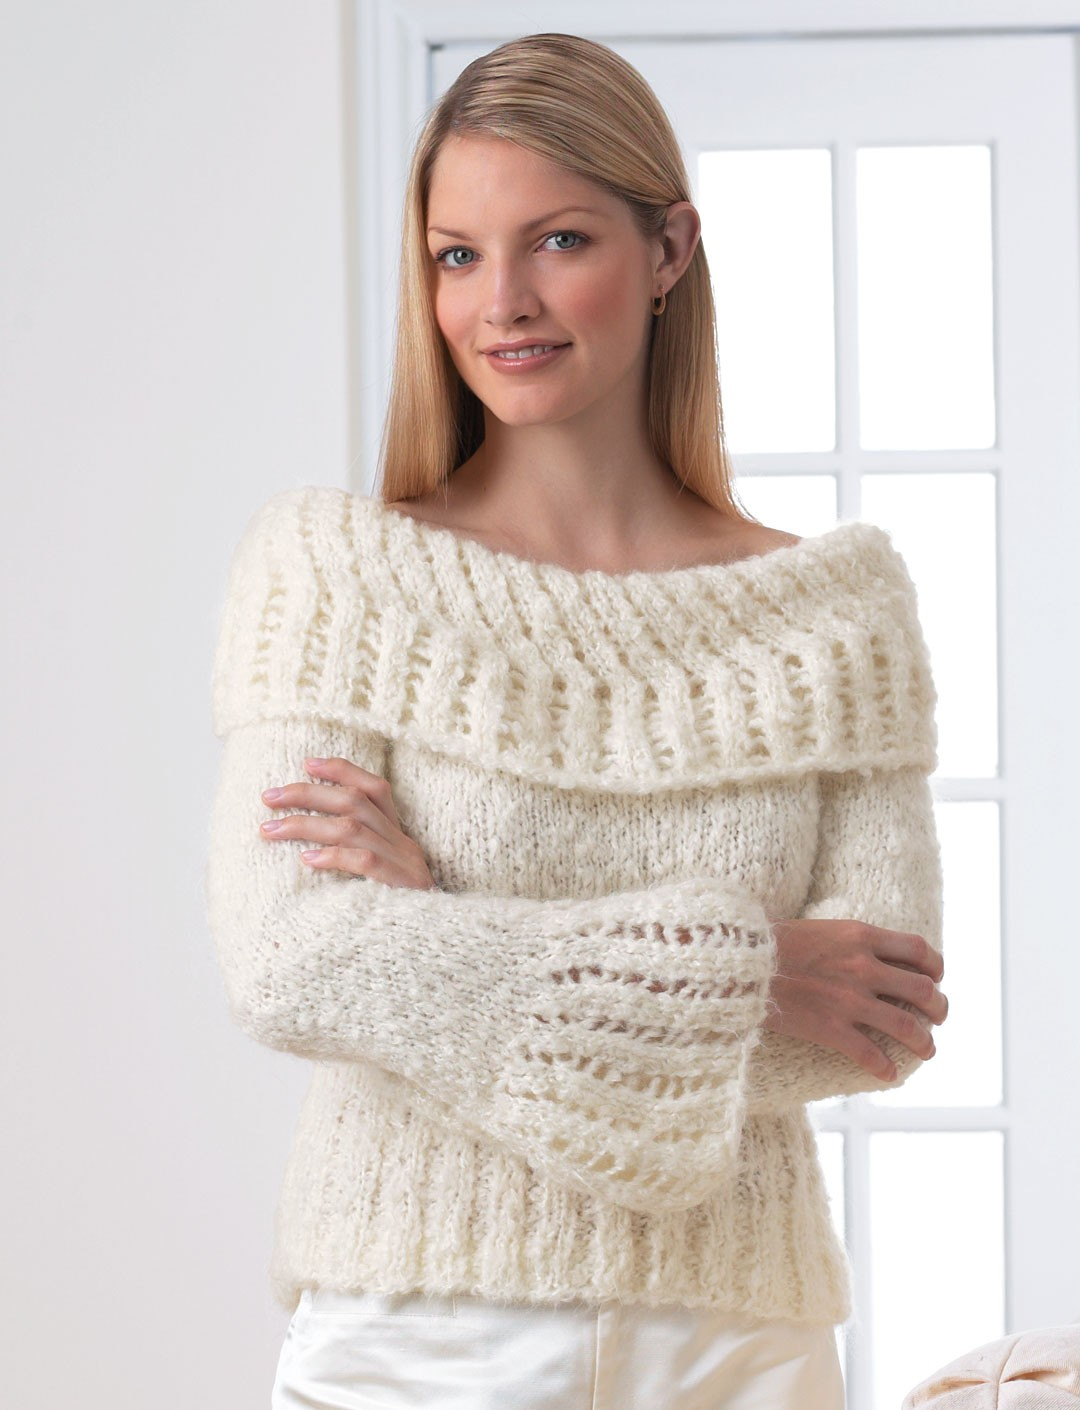 Lacework Sweater